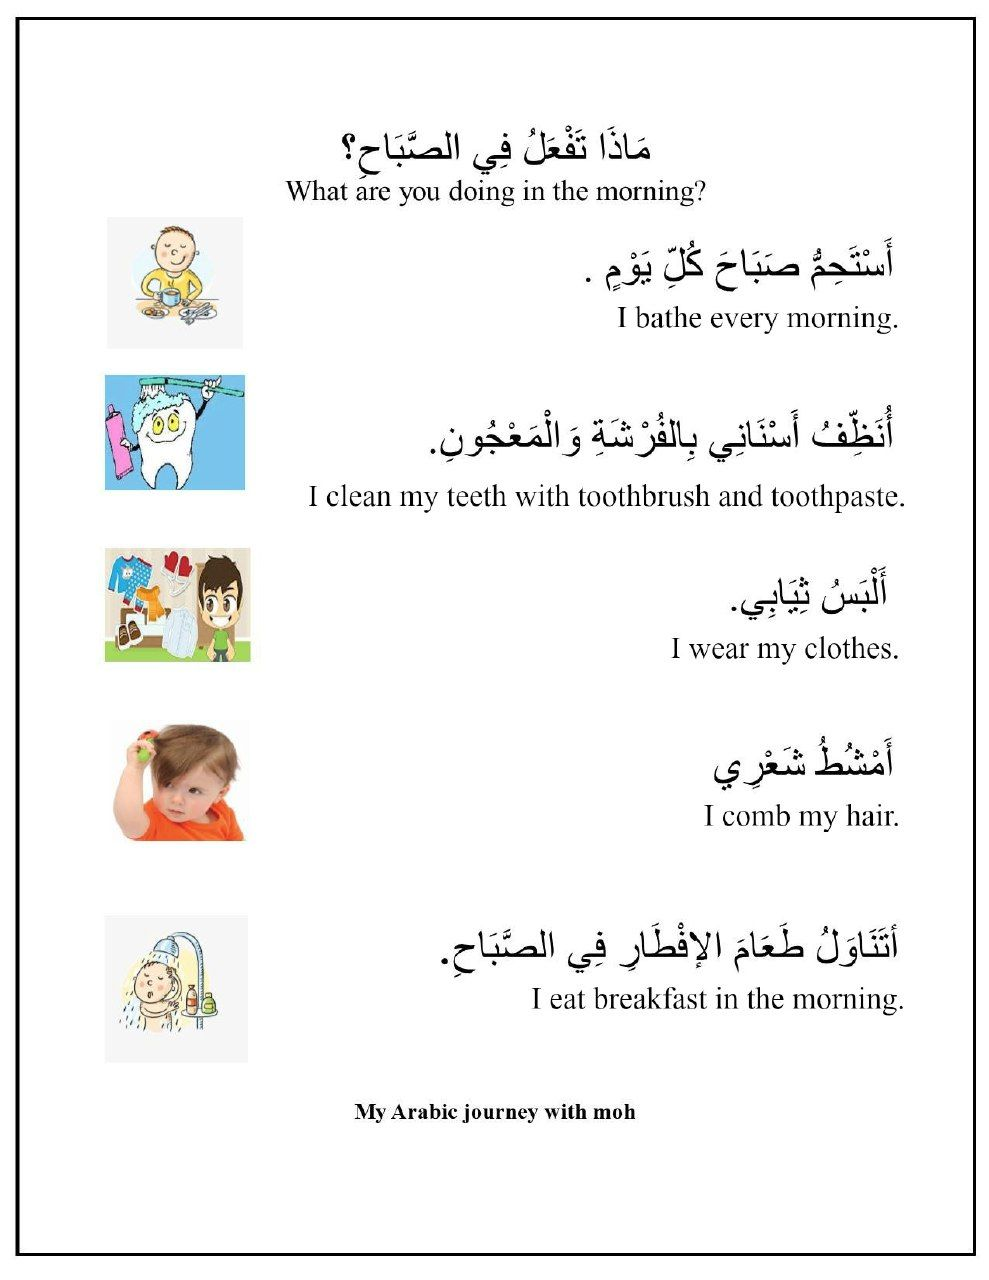 What Are You Doing In The Morning Arabic Alphabet For Kids Arabic Conversation Learn English Words